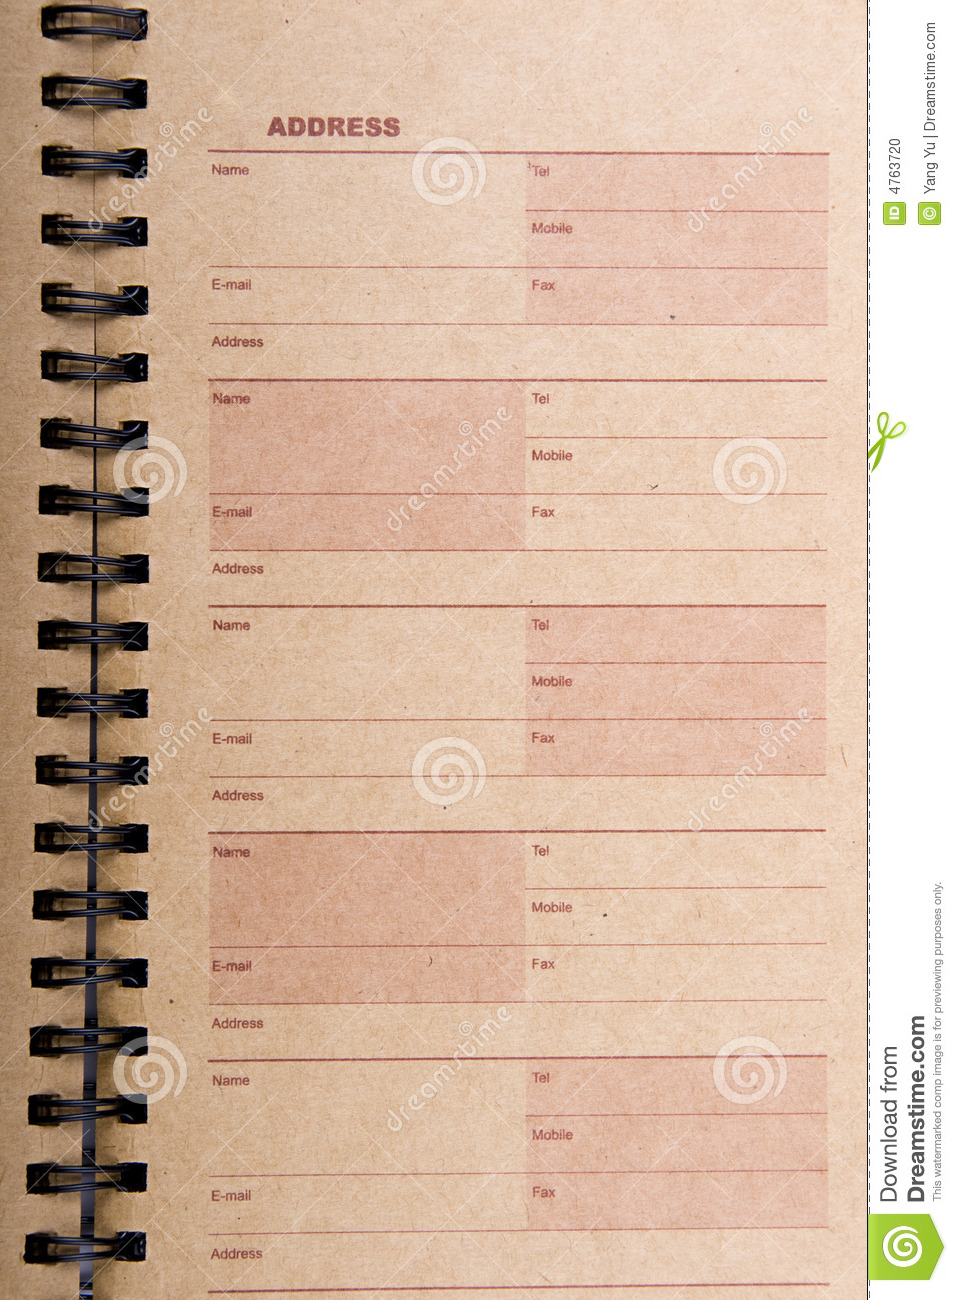 blank address book page stock photo image of directory 4763720